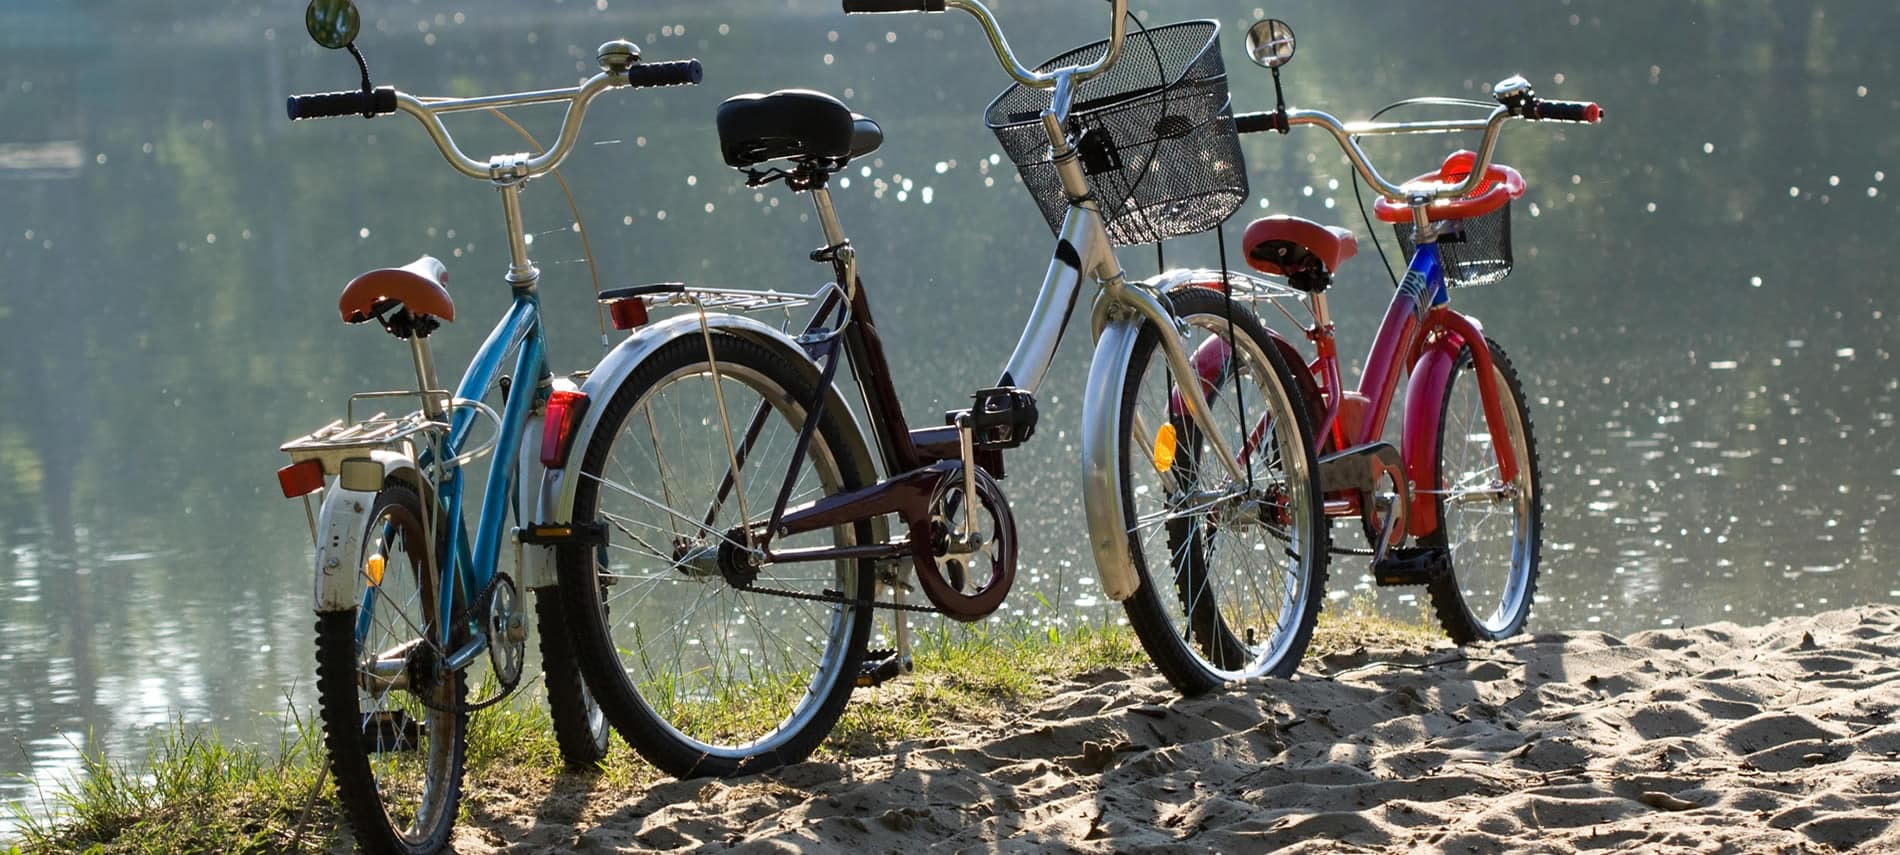 Three colorful bicycles parked on the sand next to a body of water